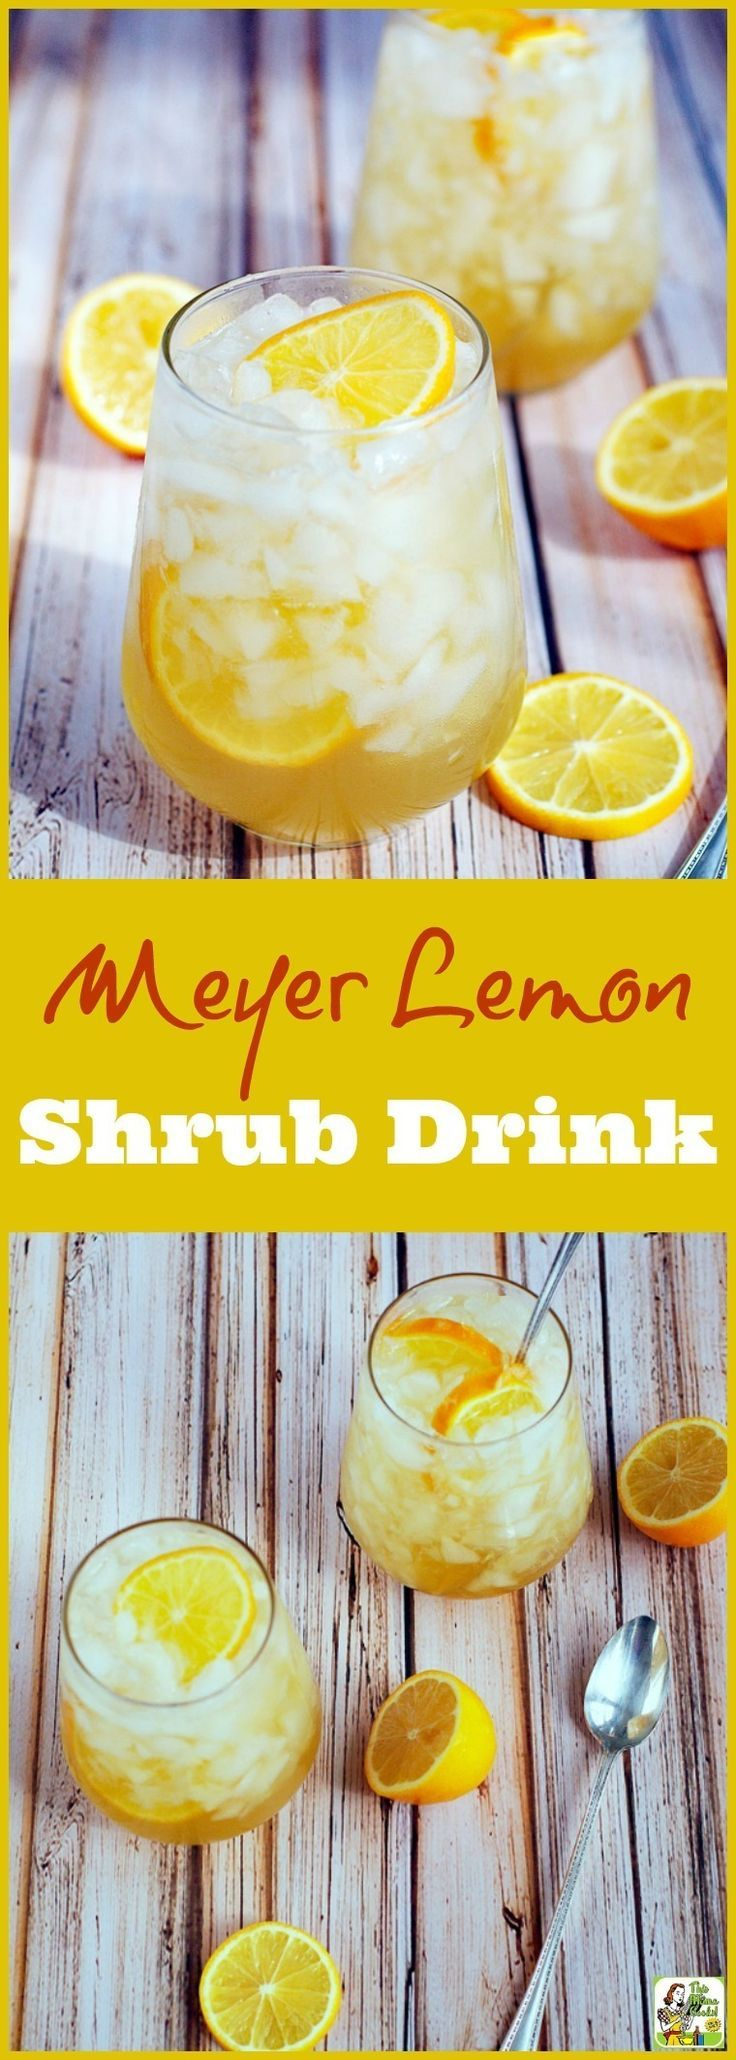 Got lemons? Make this Meyer lemon shrub drink recipe! Click to get this sugar free cocktail and mocktail drink mixer recipe. It's easy to make, perfect for low calorie, skinny cocktails, too!